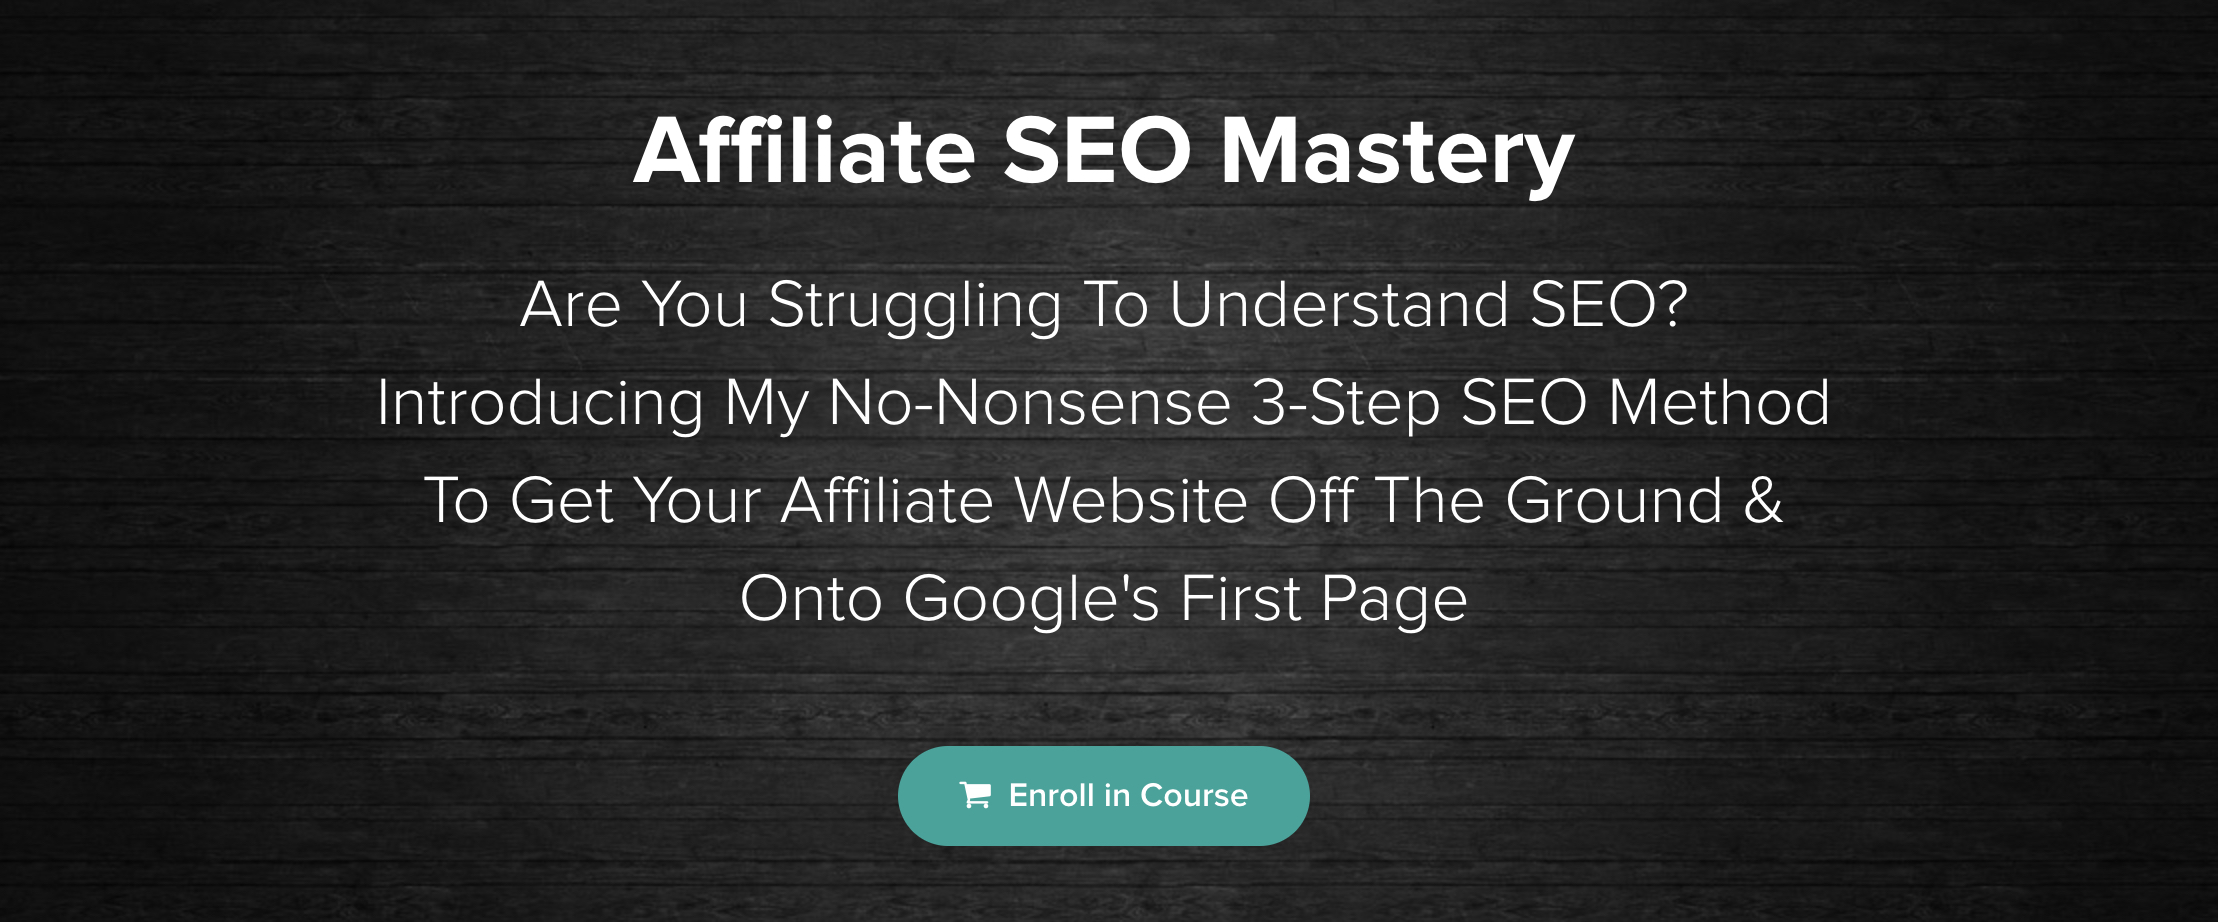 Affiliate SEO Mastery review